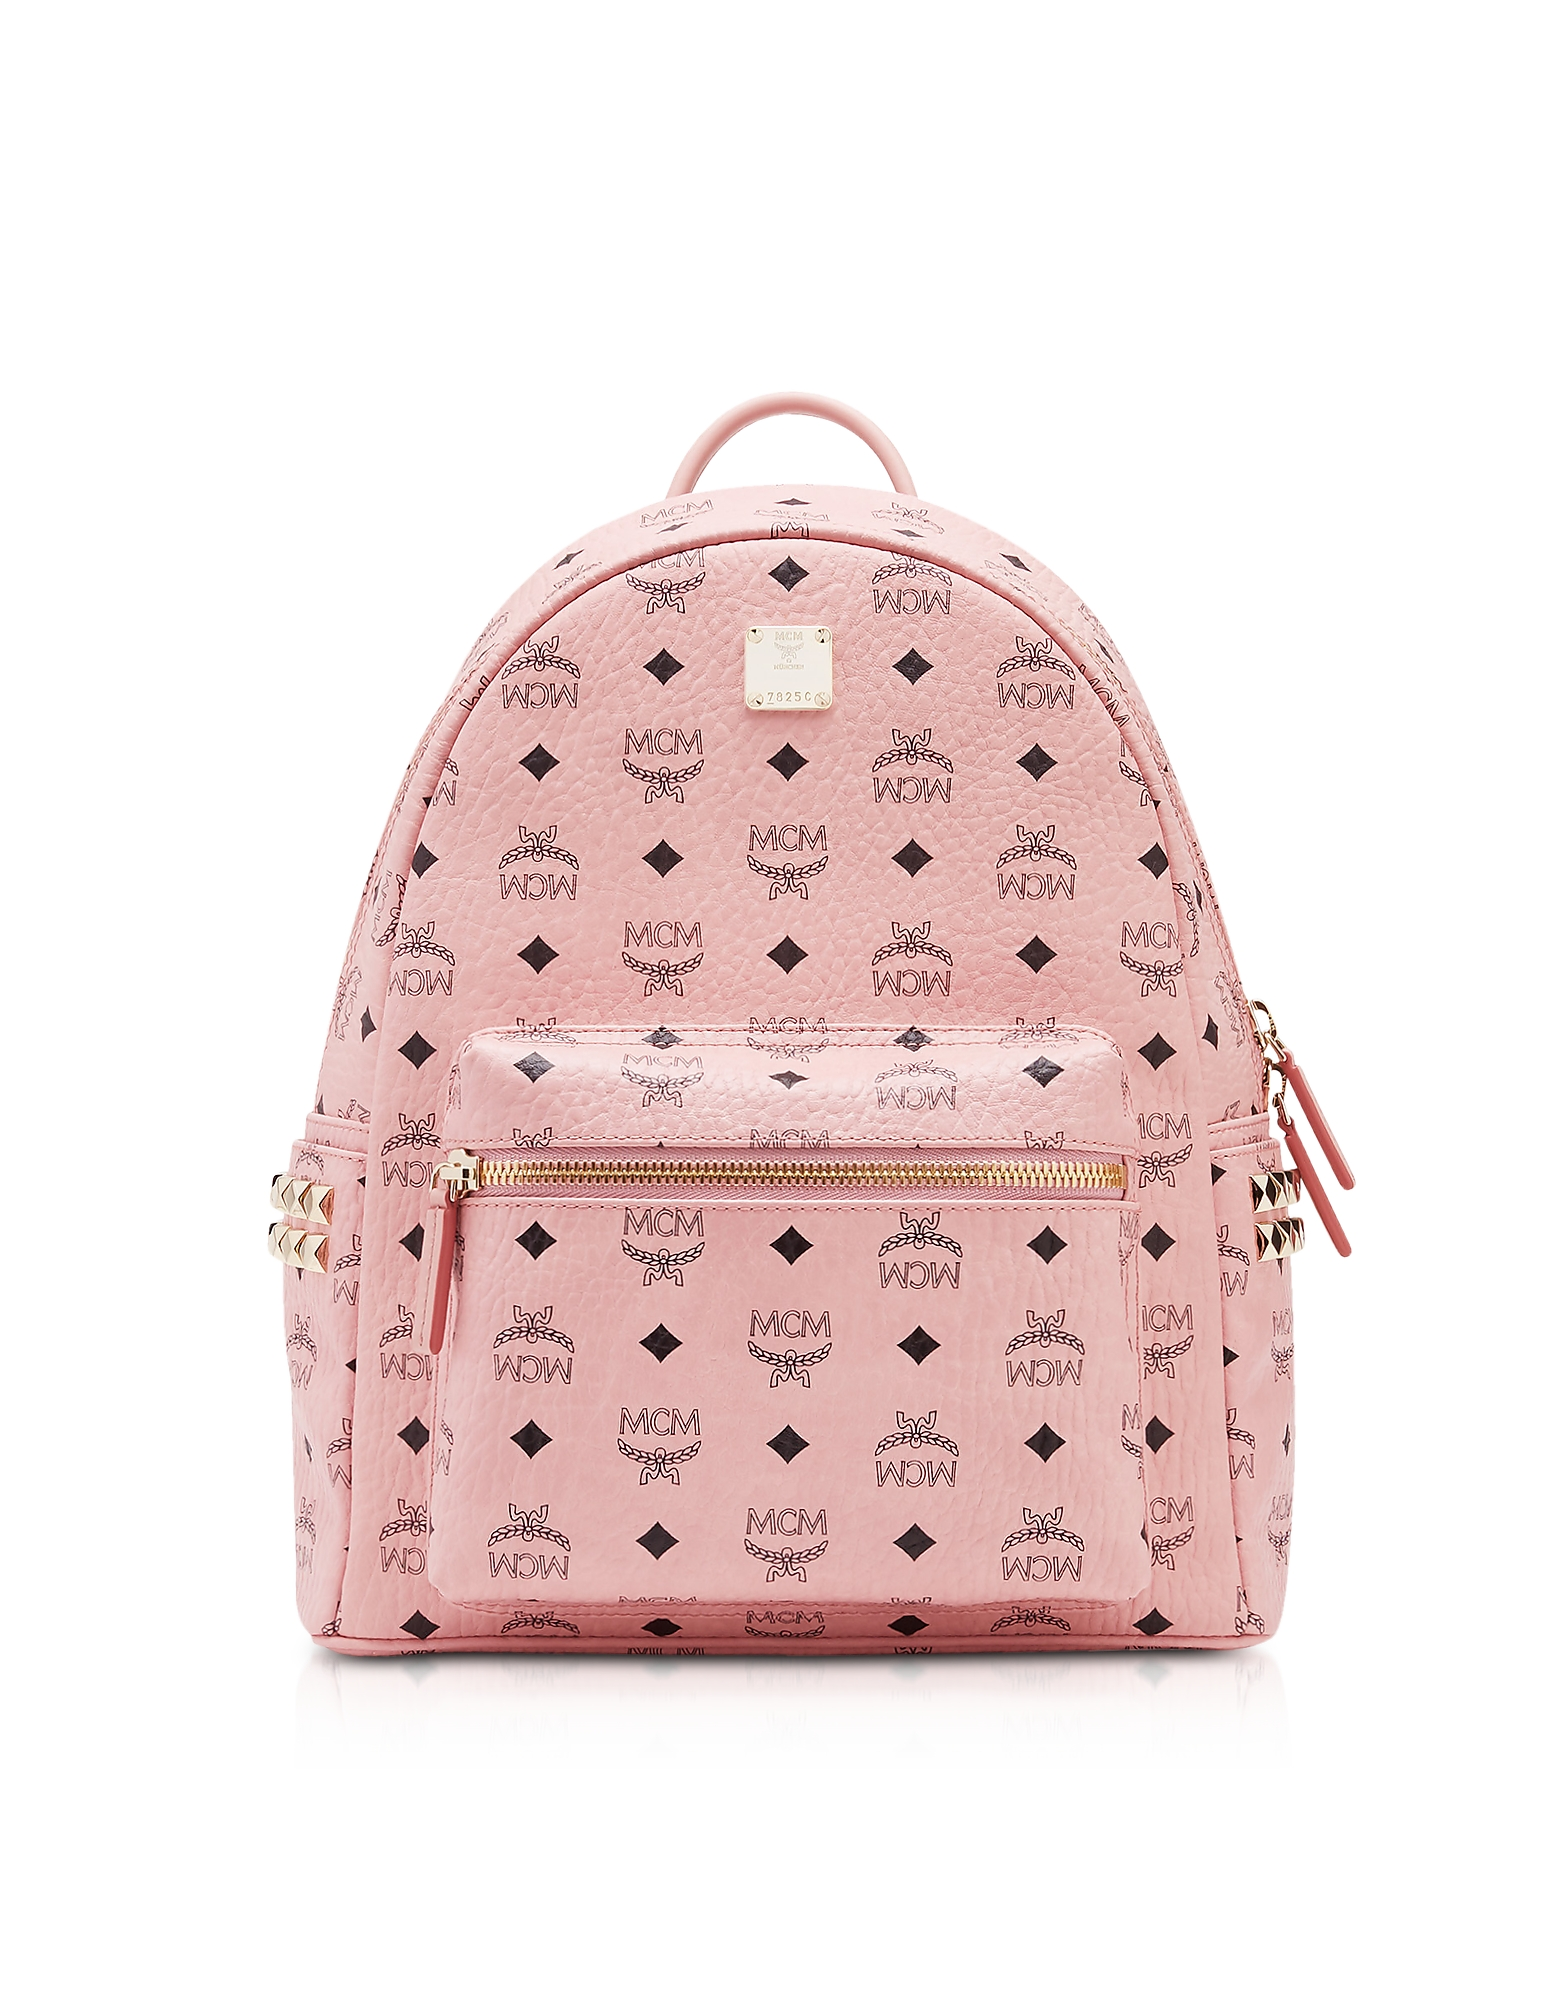 Soft Pink Small-Medium Stark Backpack